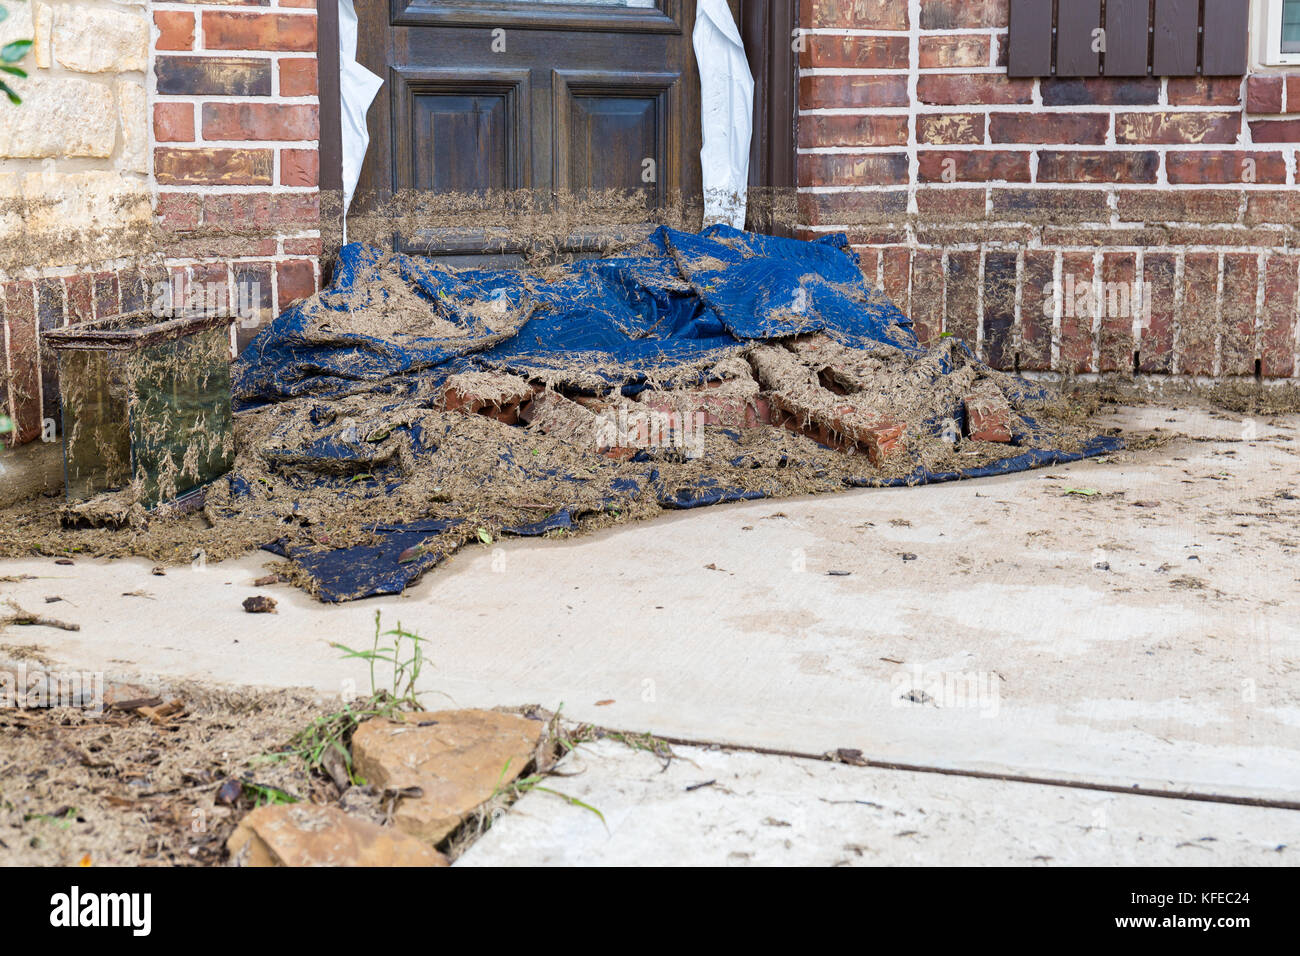 Hurricanes like Harvey cause catastrophic flooding in residential areas. The high water and sediment sludge mark - Stock Image